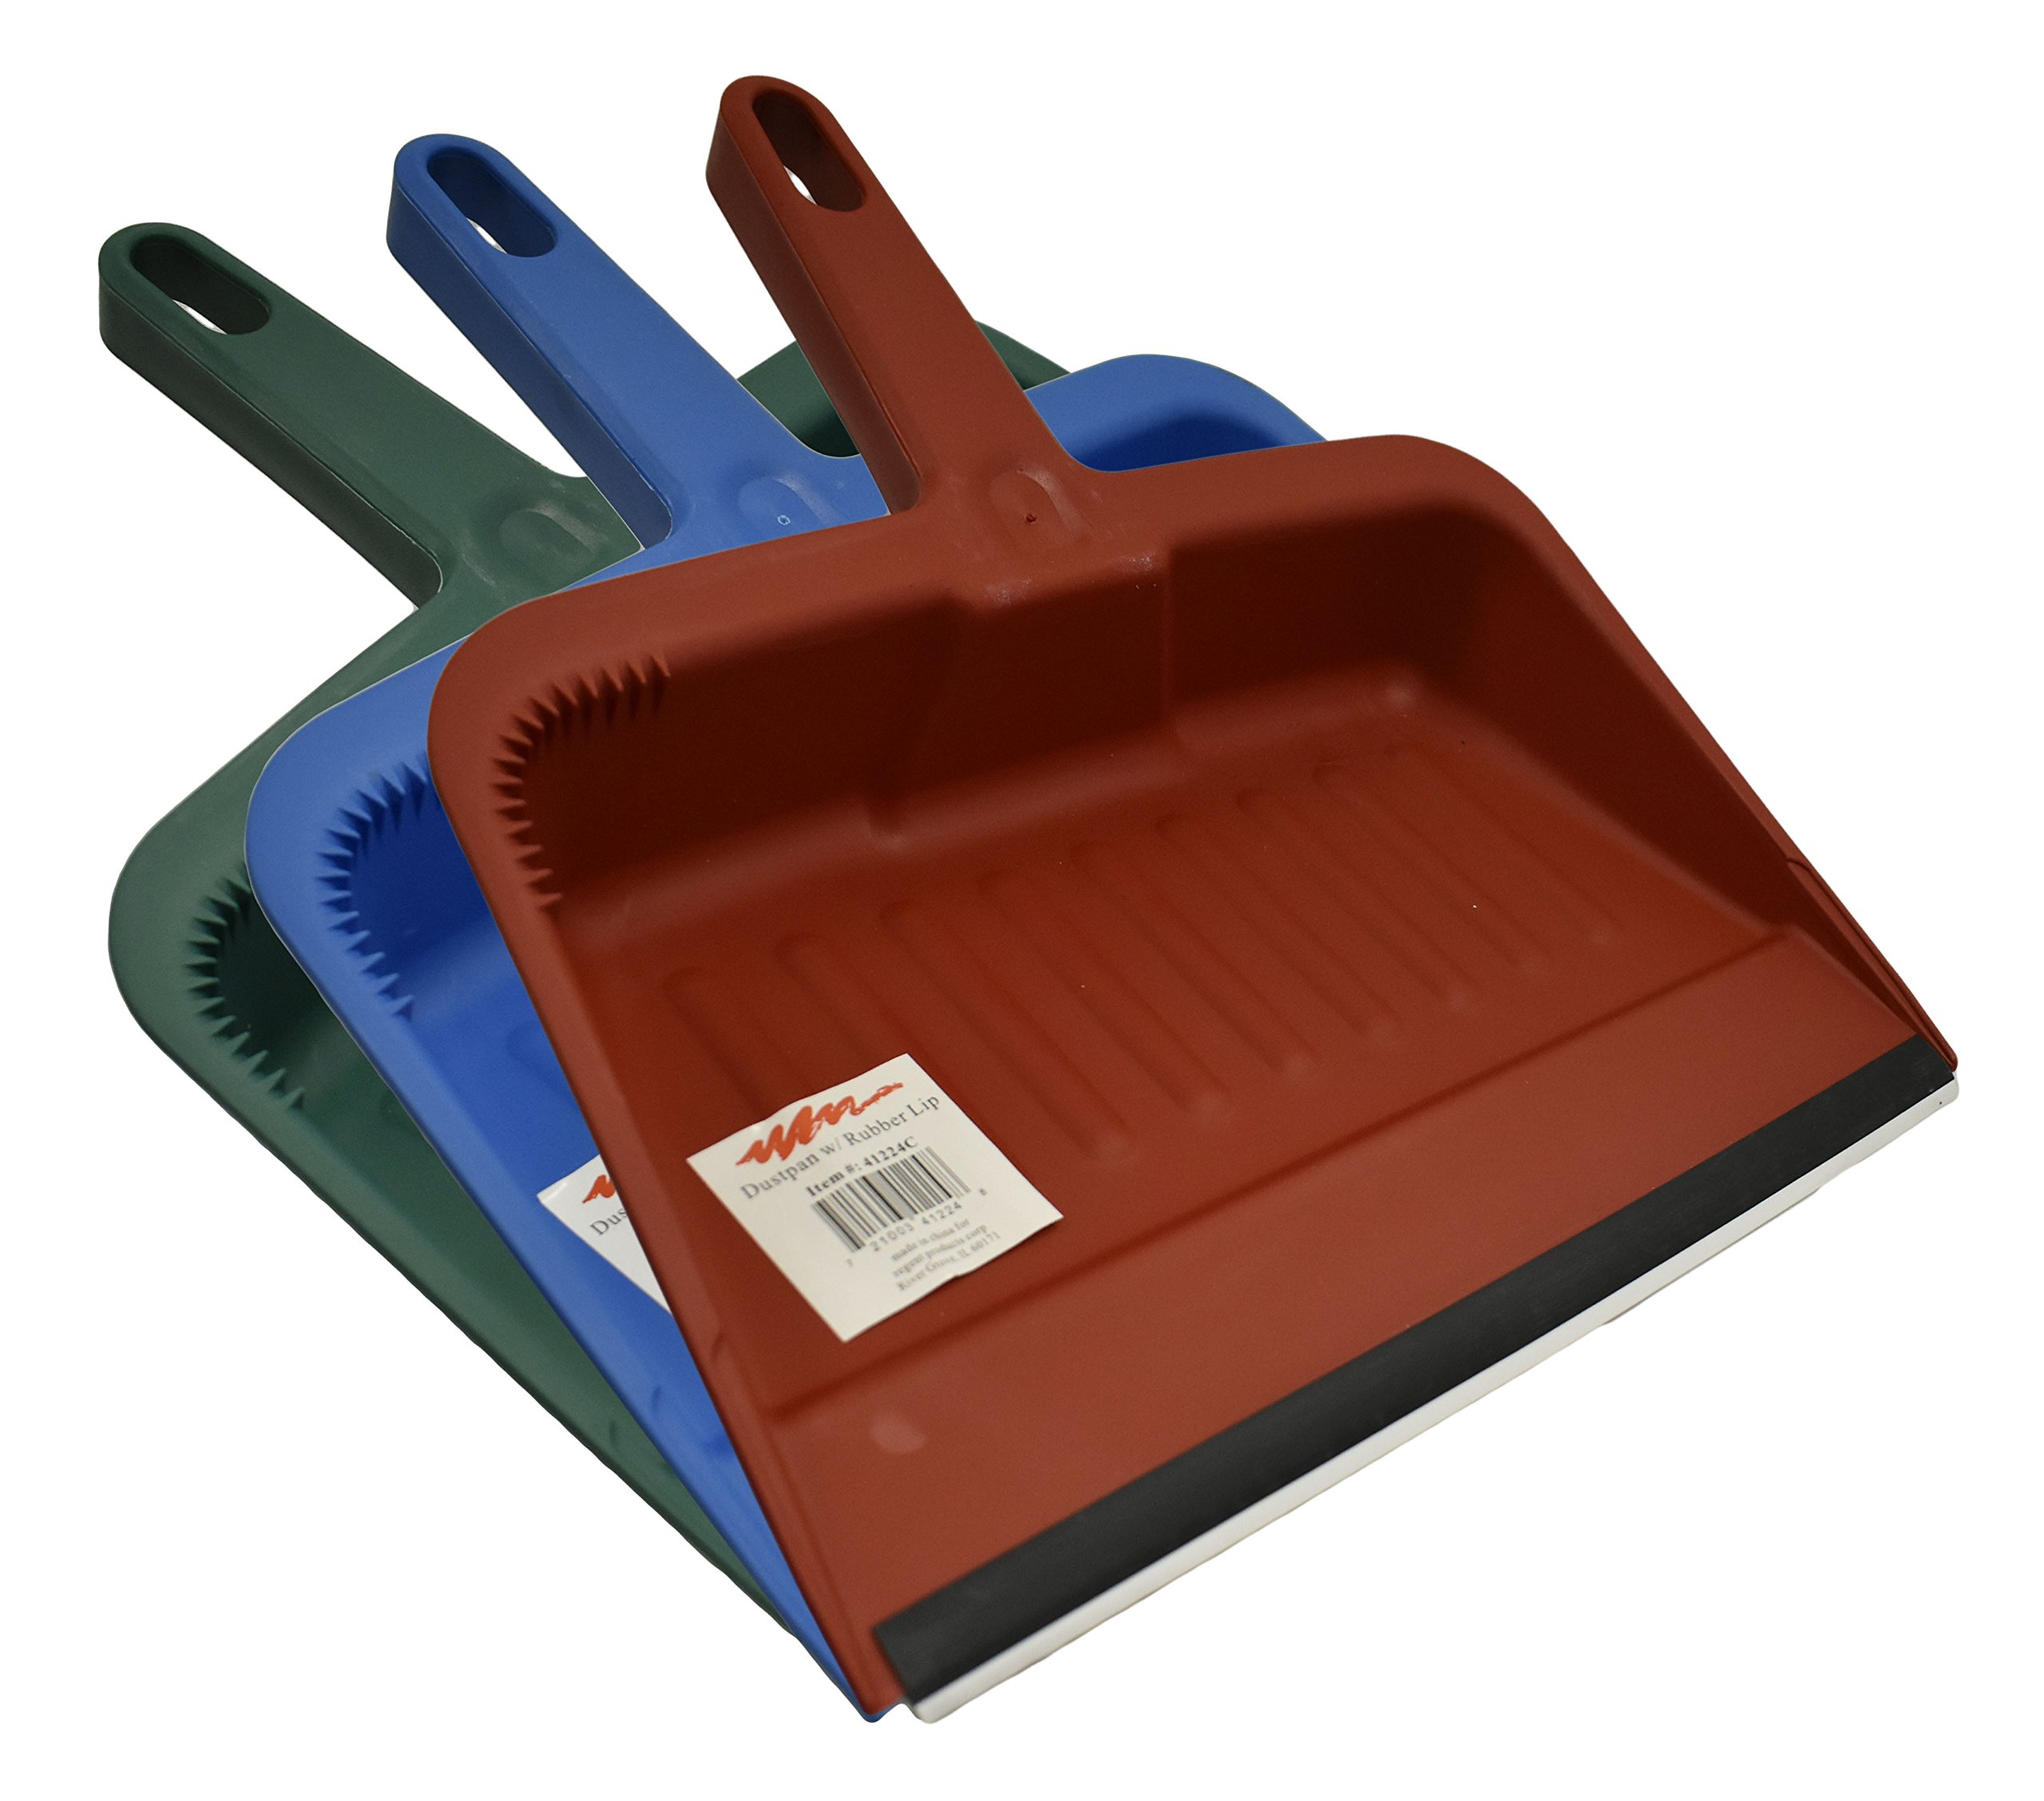 Set of Heavy Duty Deep Dustpans! Rubber Lip - 12'' - Deep Dustpans Perfect for any Office, Home, or Workplace! (3, Assorted)